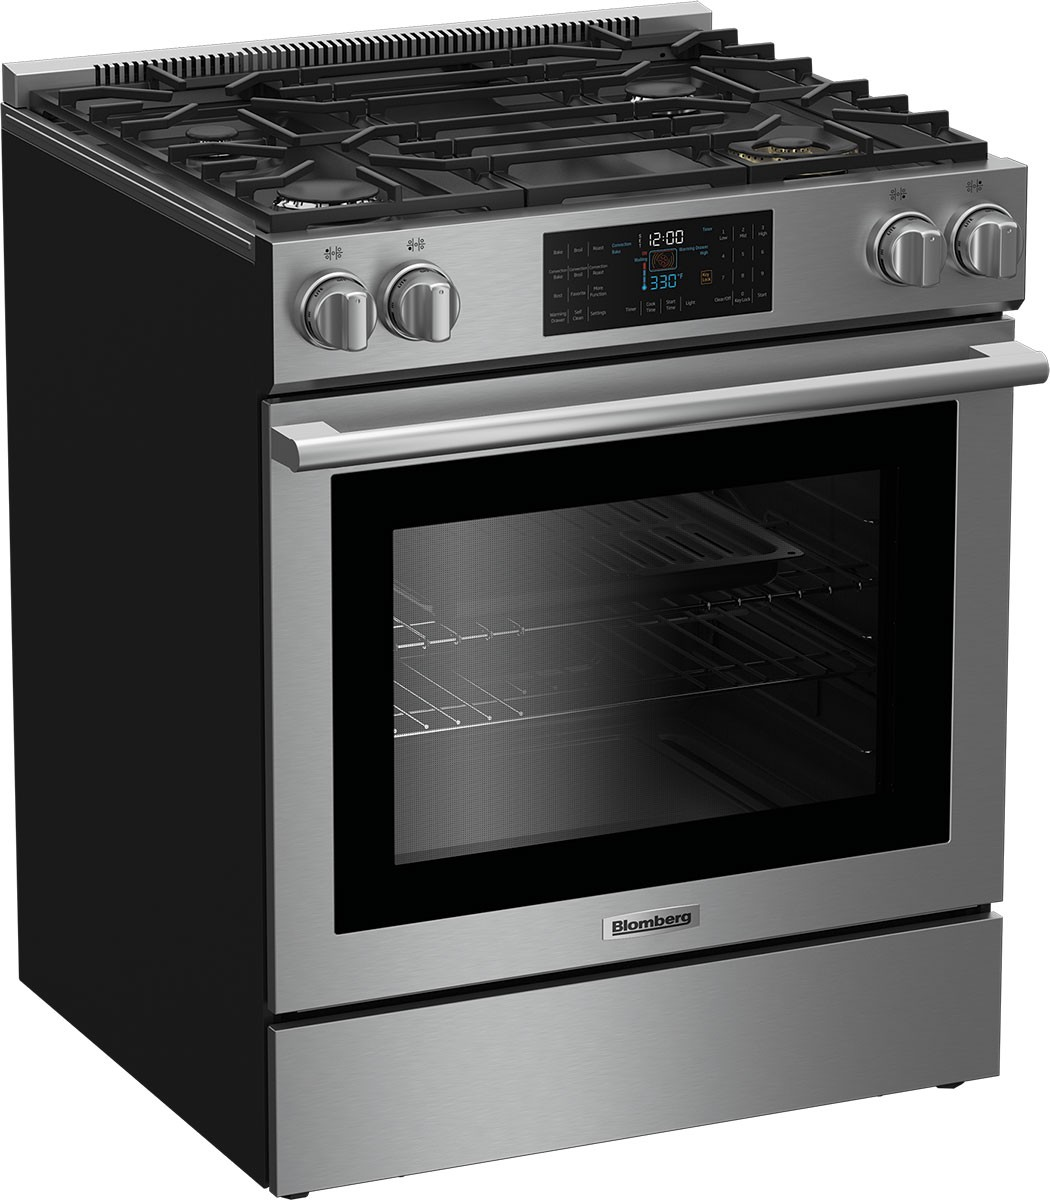 Blomberg 30 Inch Slide-In Gas Range